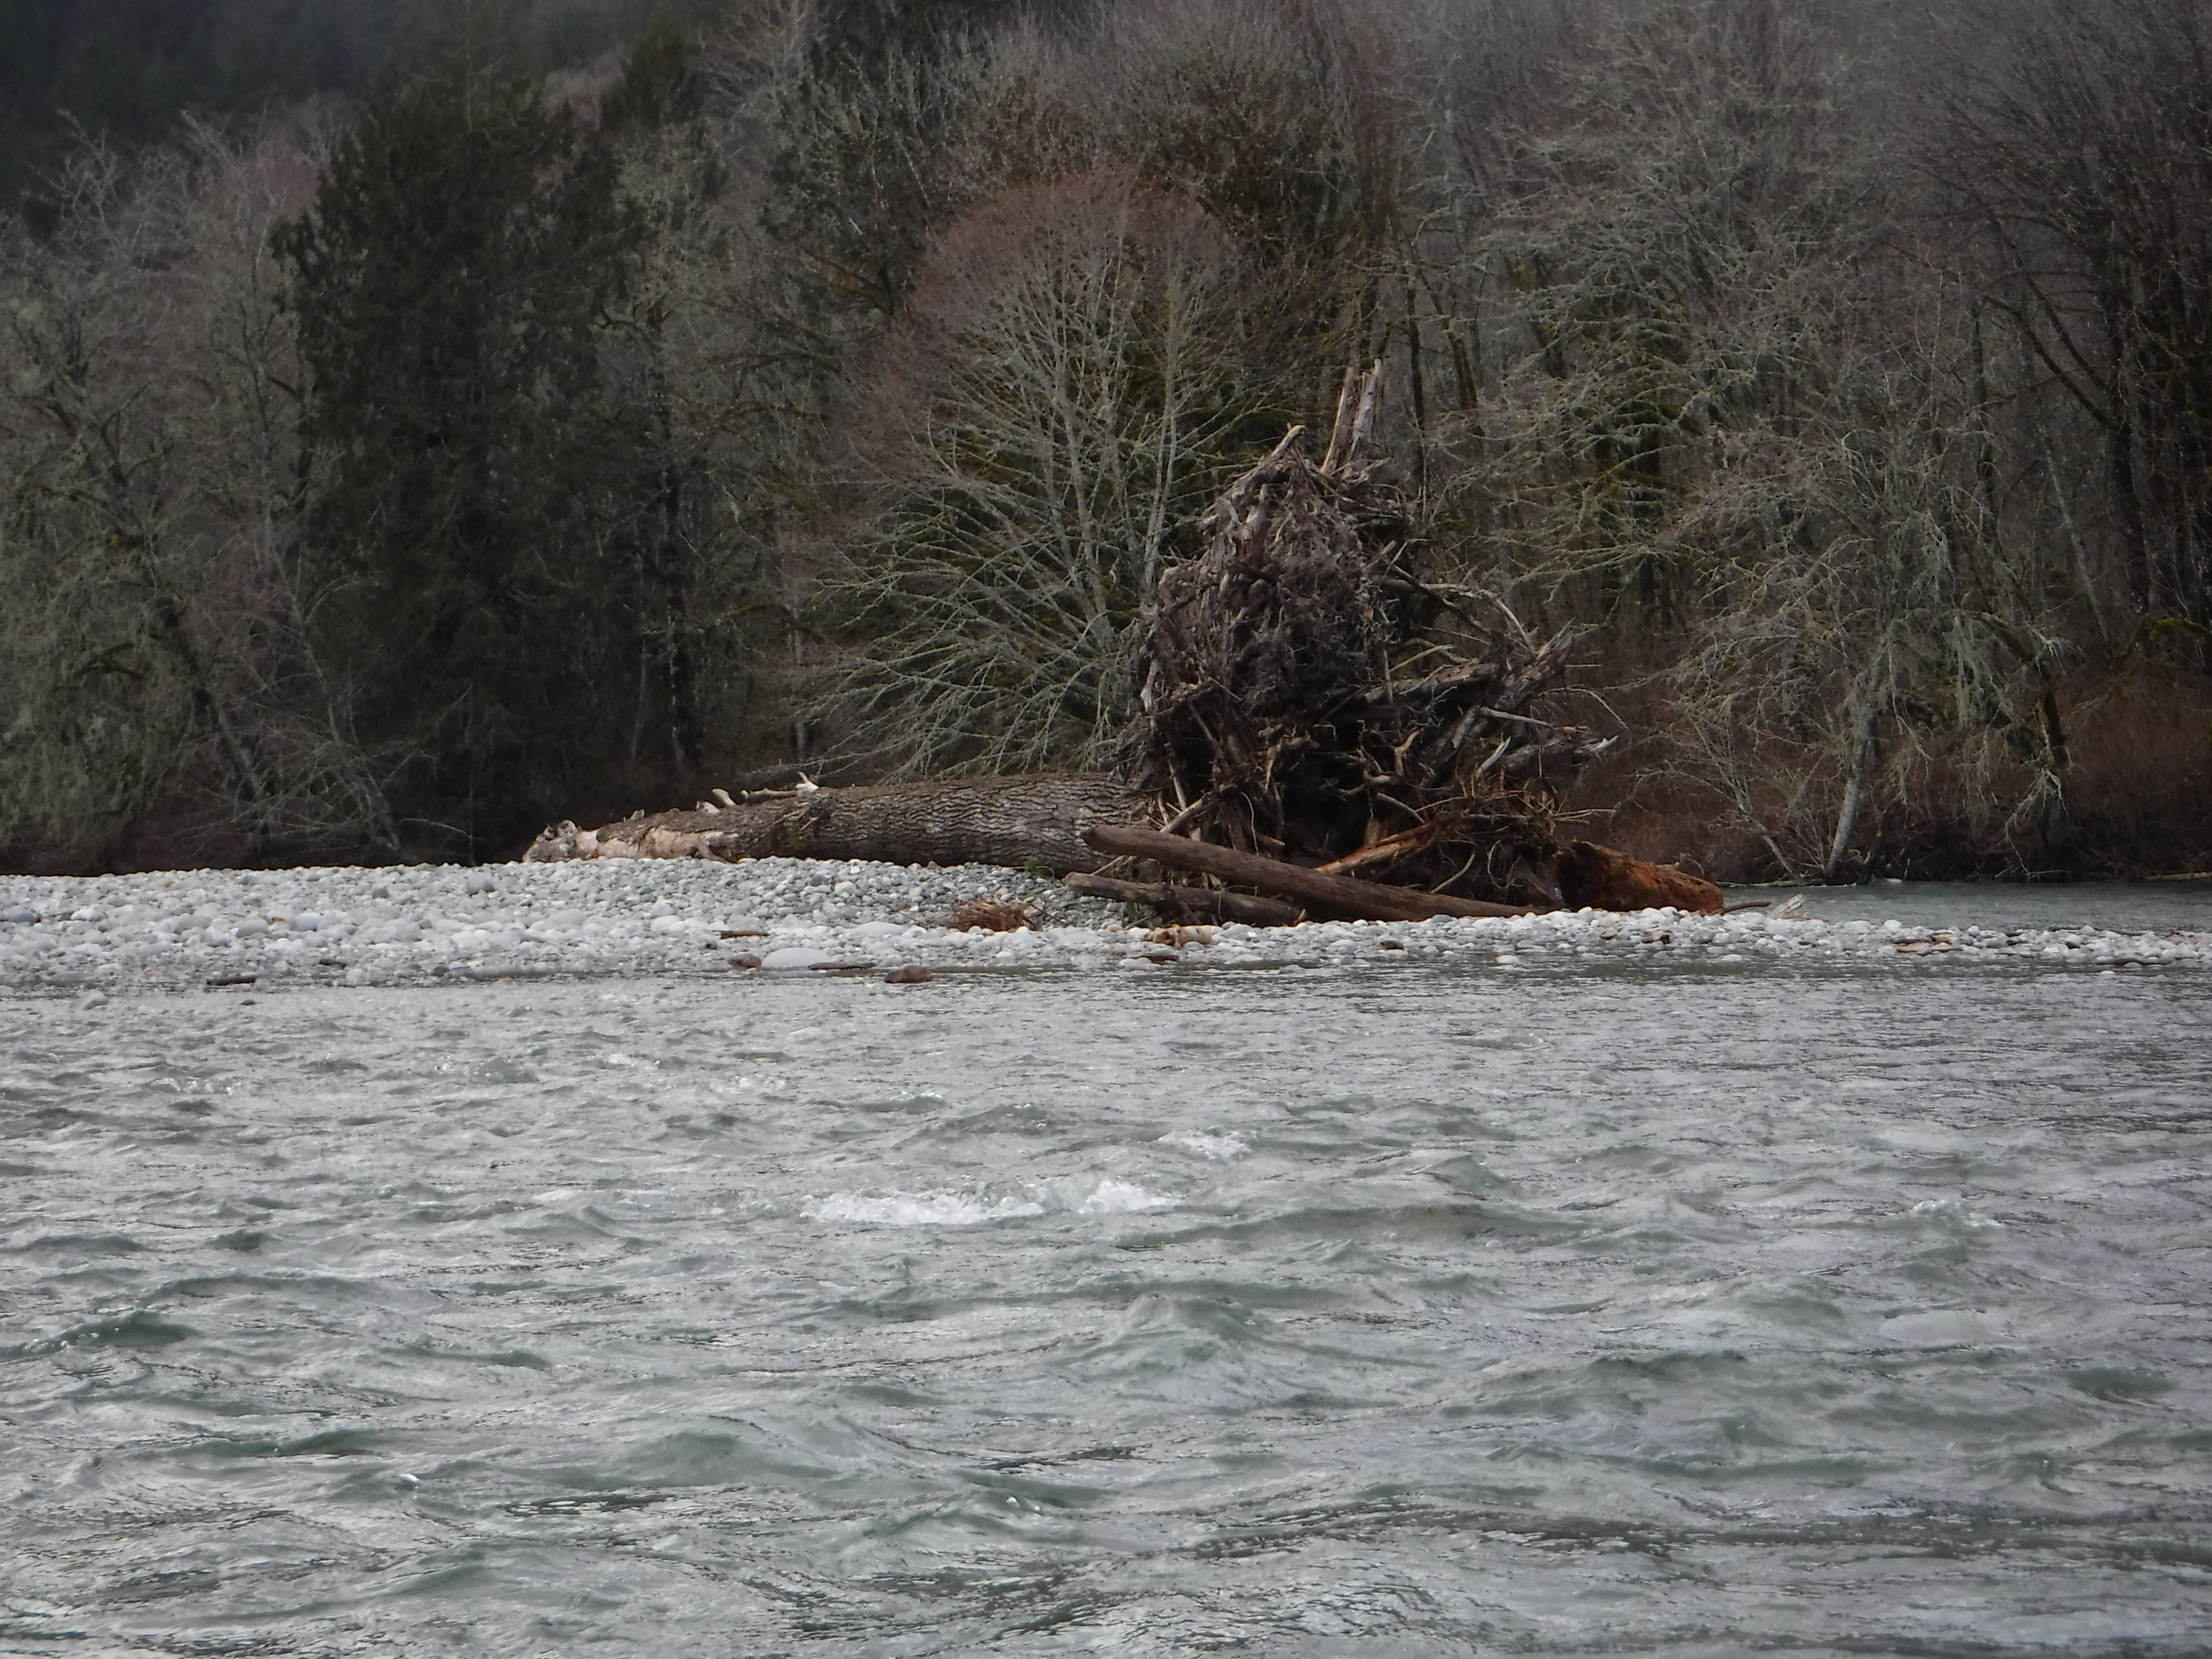 Large tree washed down river.